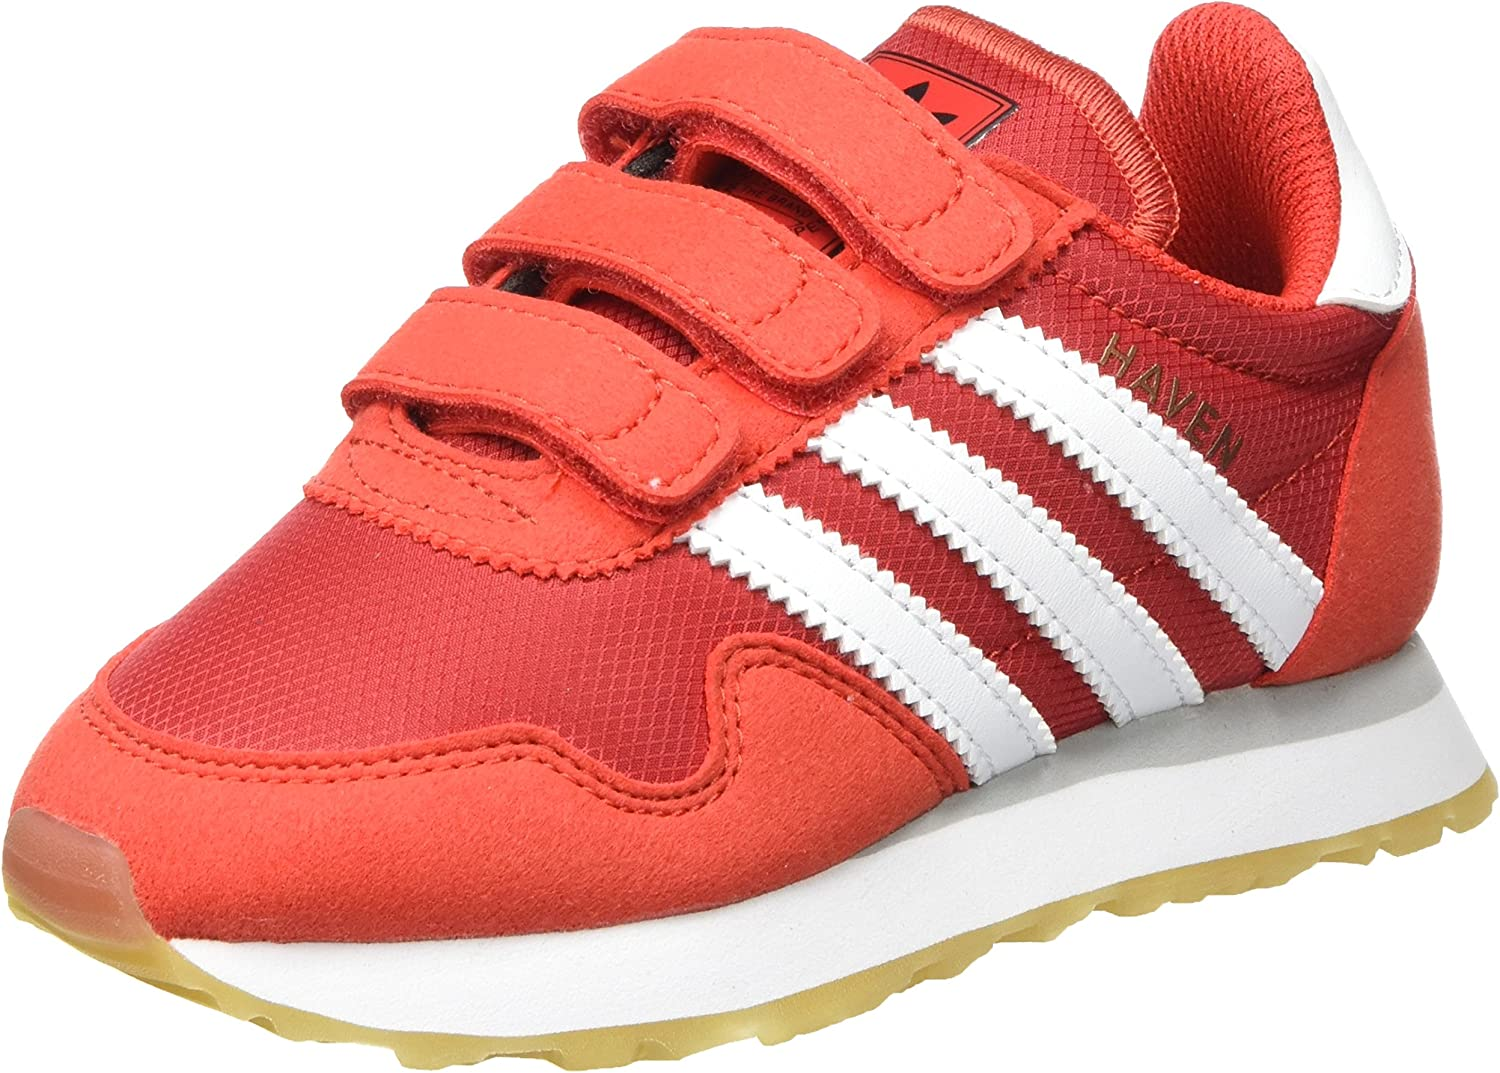 adidas haven rosse